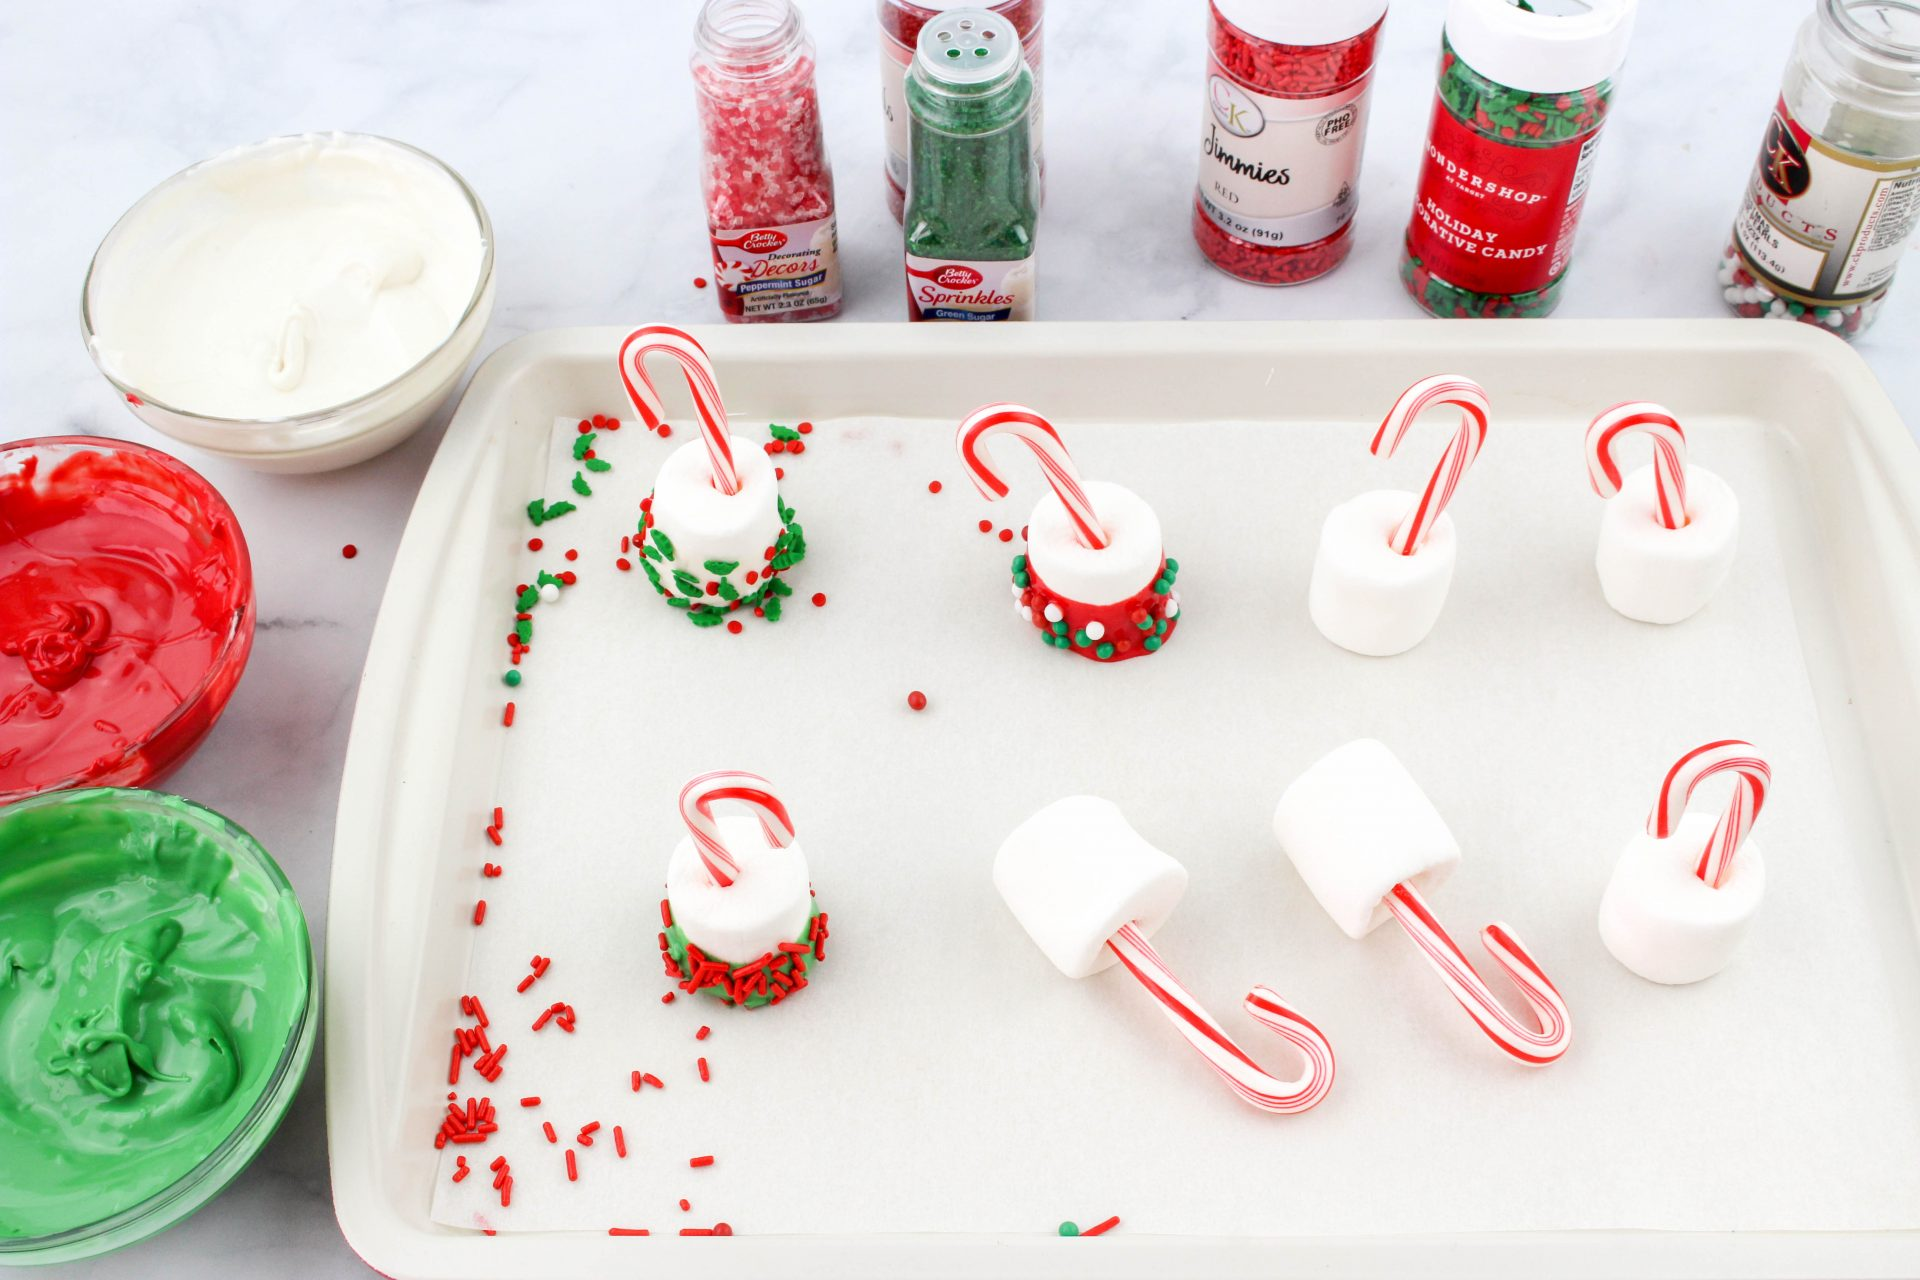 These Candy Cane Hot Chocolate Dippers are a simple and fun treat.  Ready in just minutes, this easy recipe will brighten up your favorite hot chocolate drink.